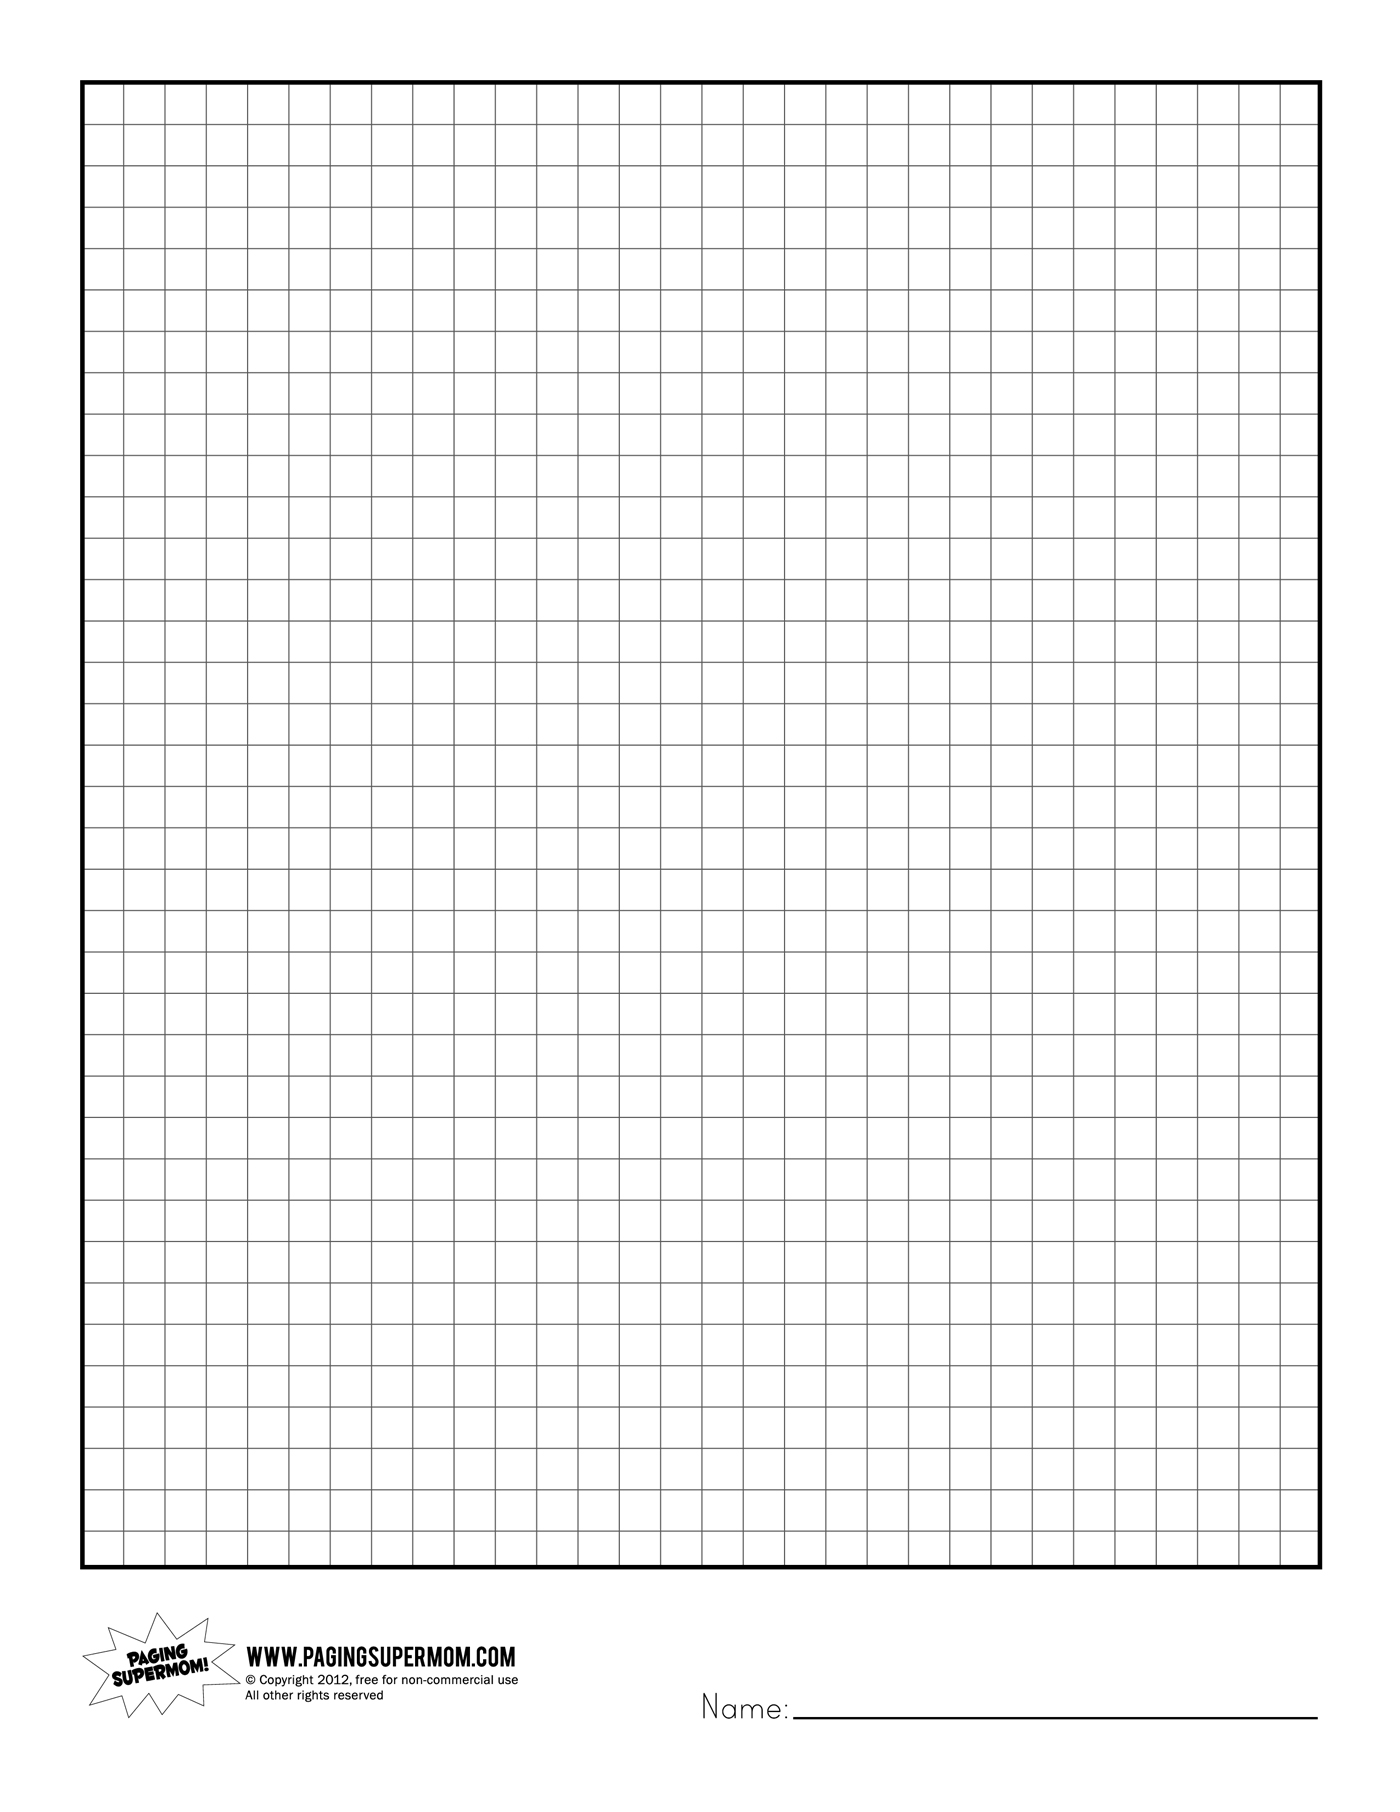 6 Best Images of Printable Graph Paper For Teachers - Free ...